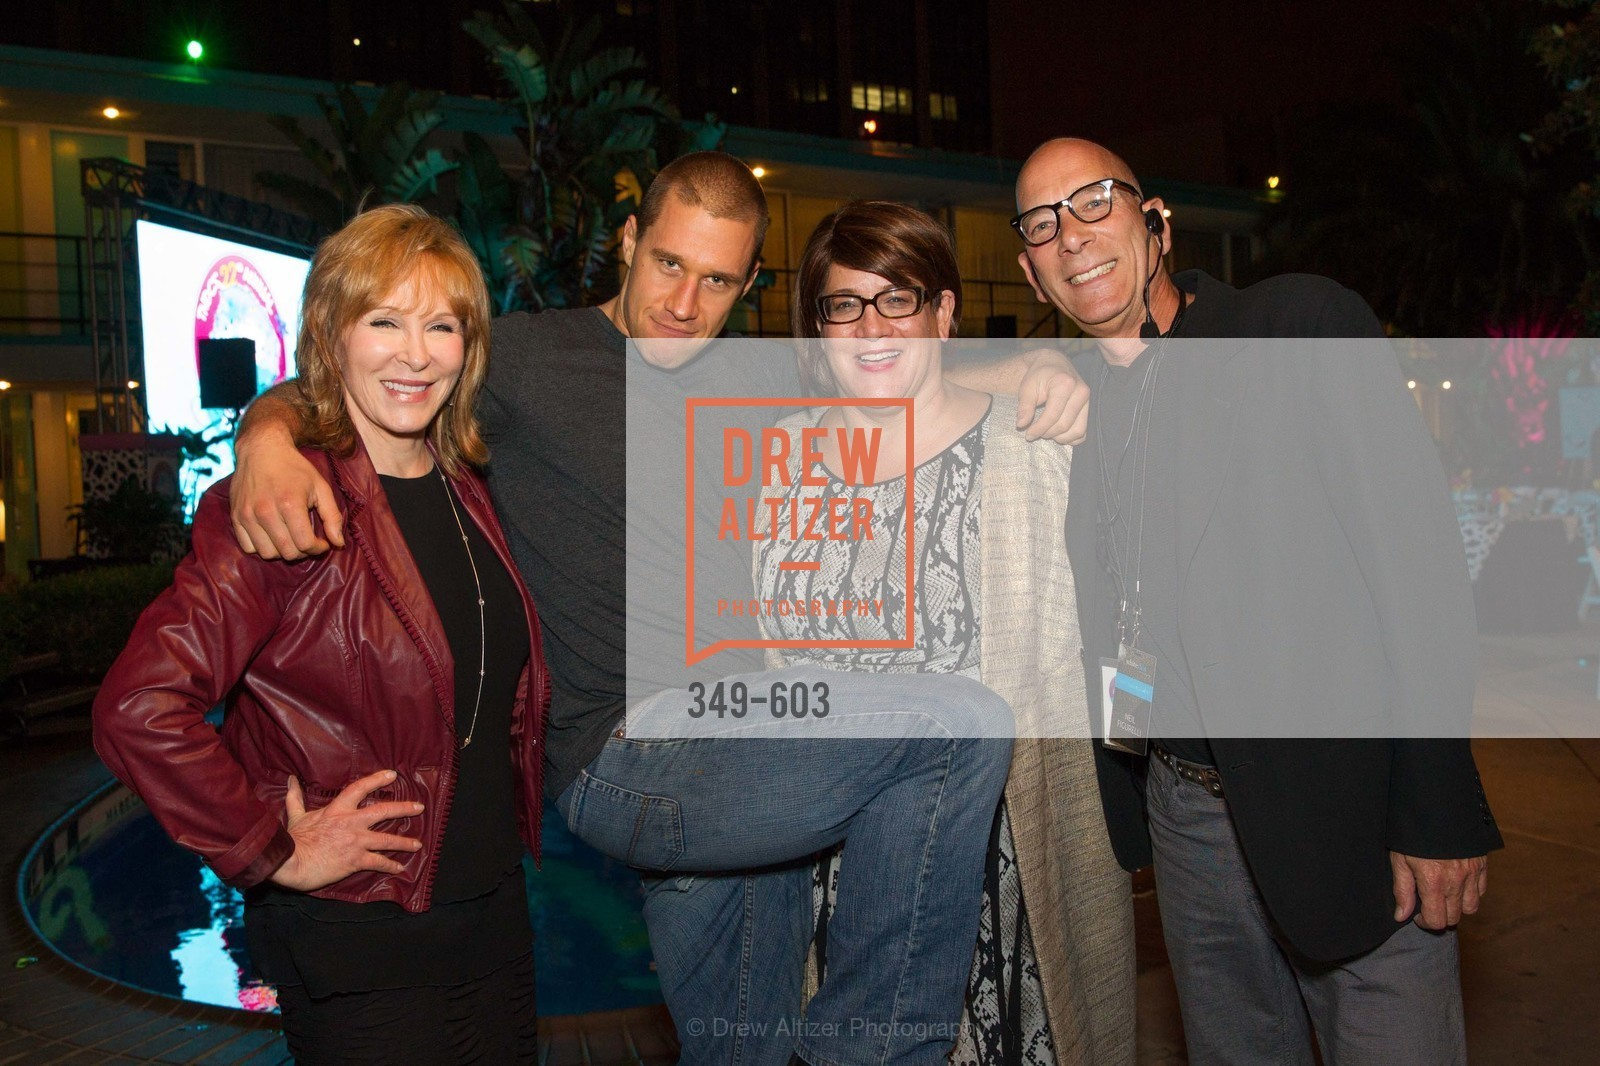 Cheryl Jennings, AJ Kirsch, Neil Figurelli, 22nd Annual TNDC CELEBRITY POOL TOSS, US, October 9th, 2014,Drew Altizer, Drew Altizer Photography, full-service event agency, private events, San Francisco photographer, photographer California